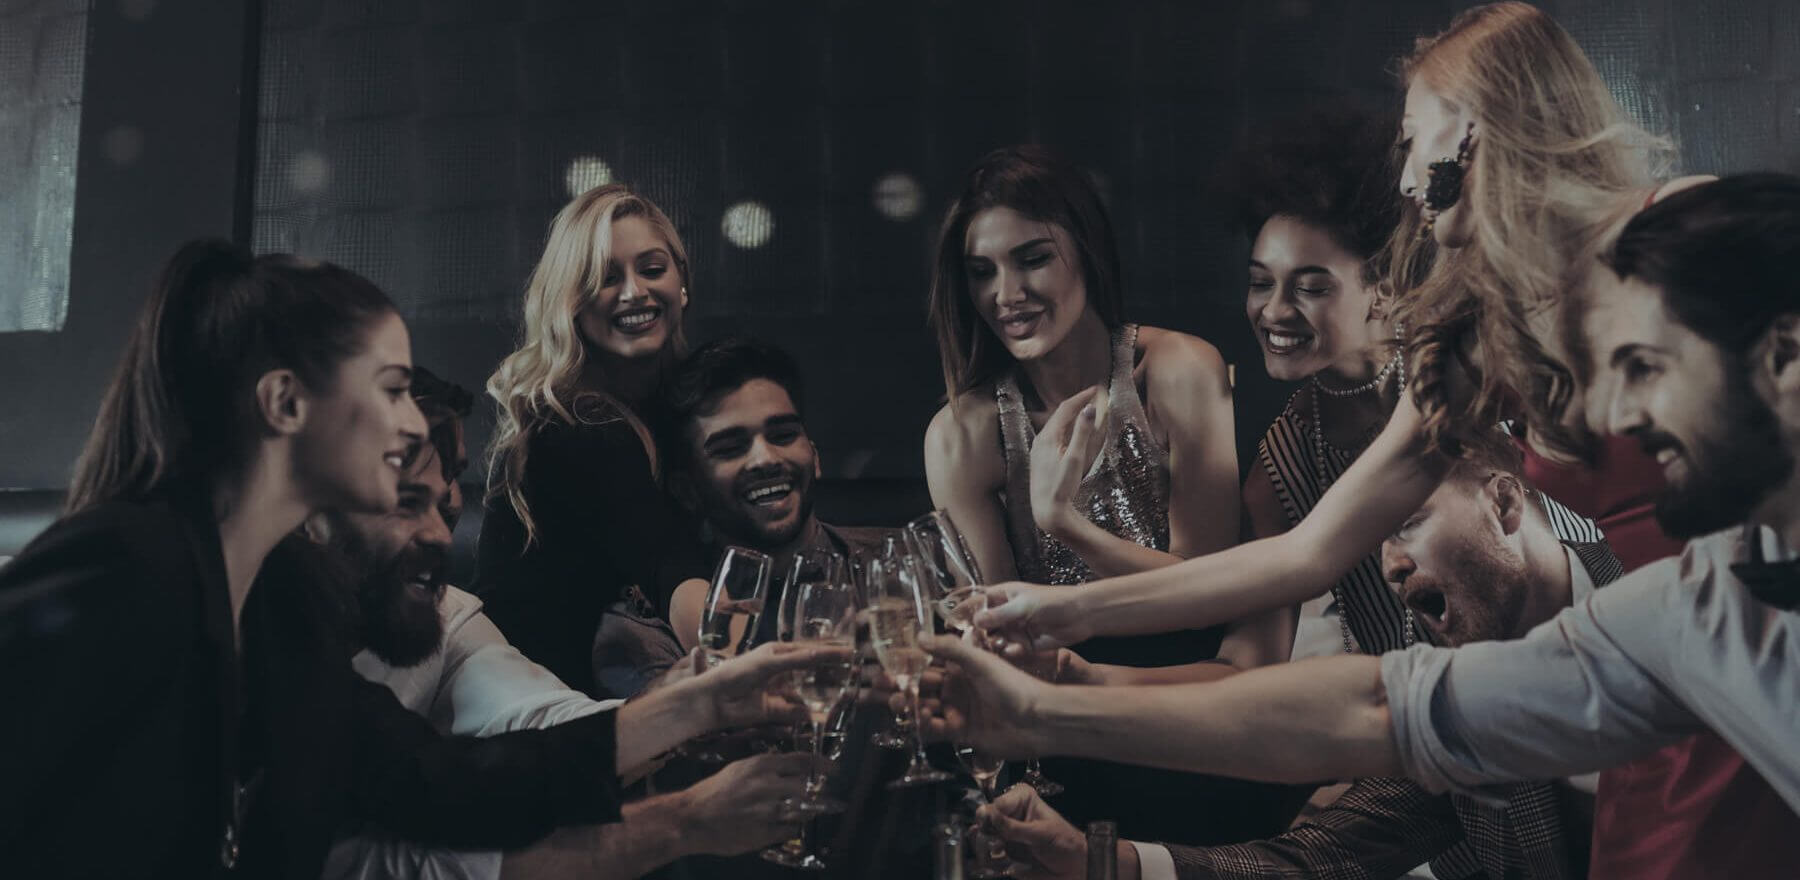 A group of friends celebrate an event.